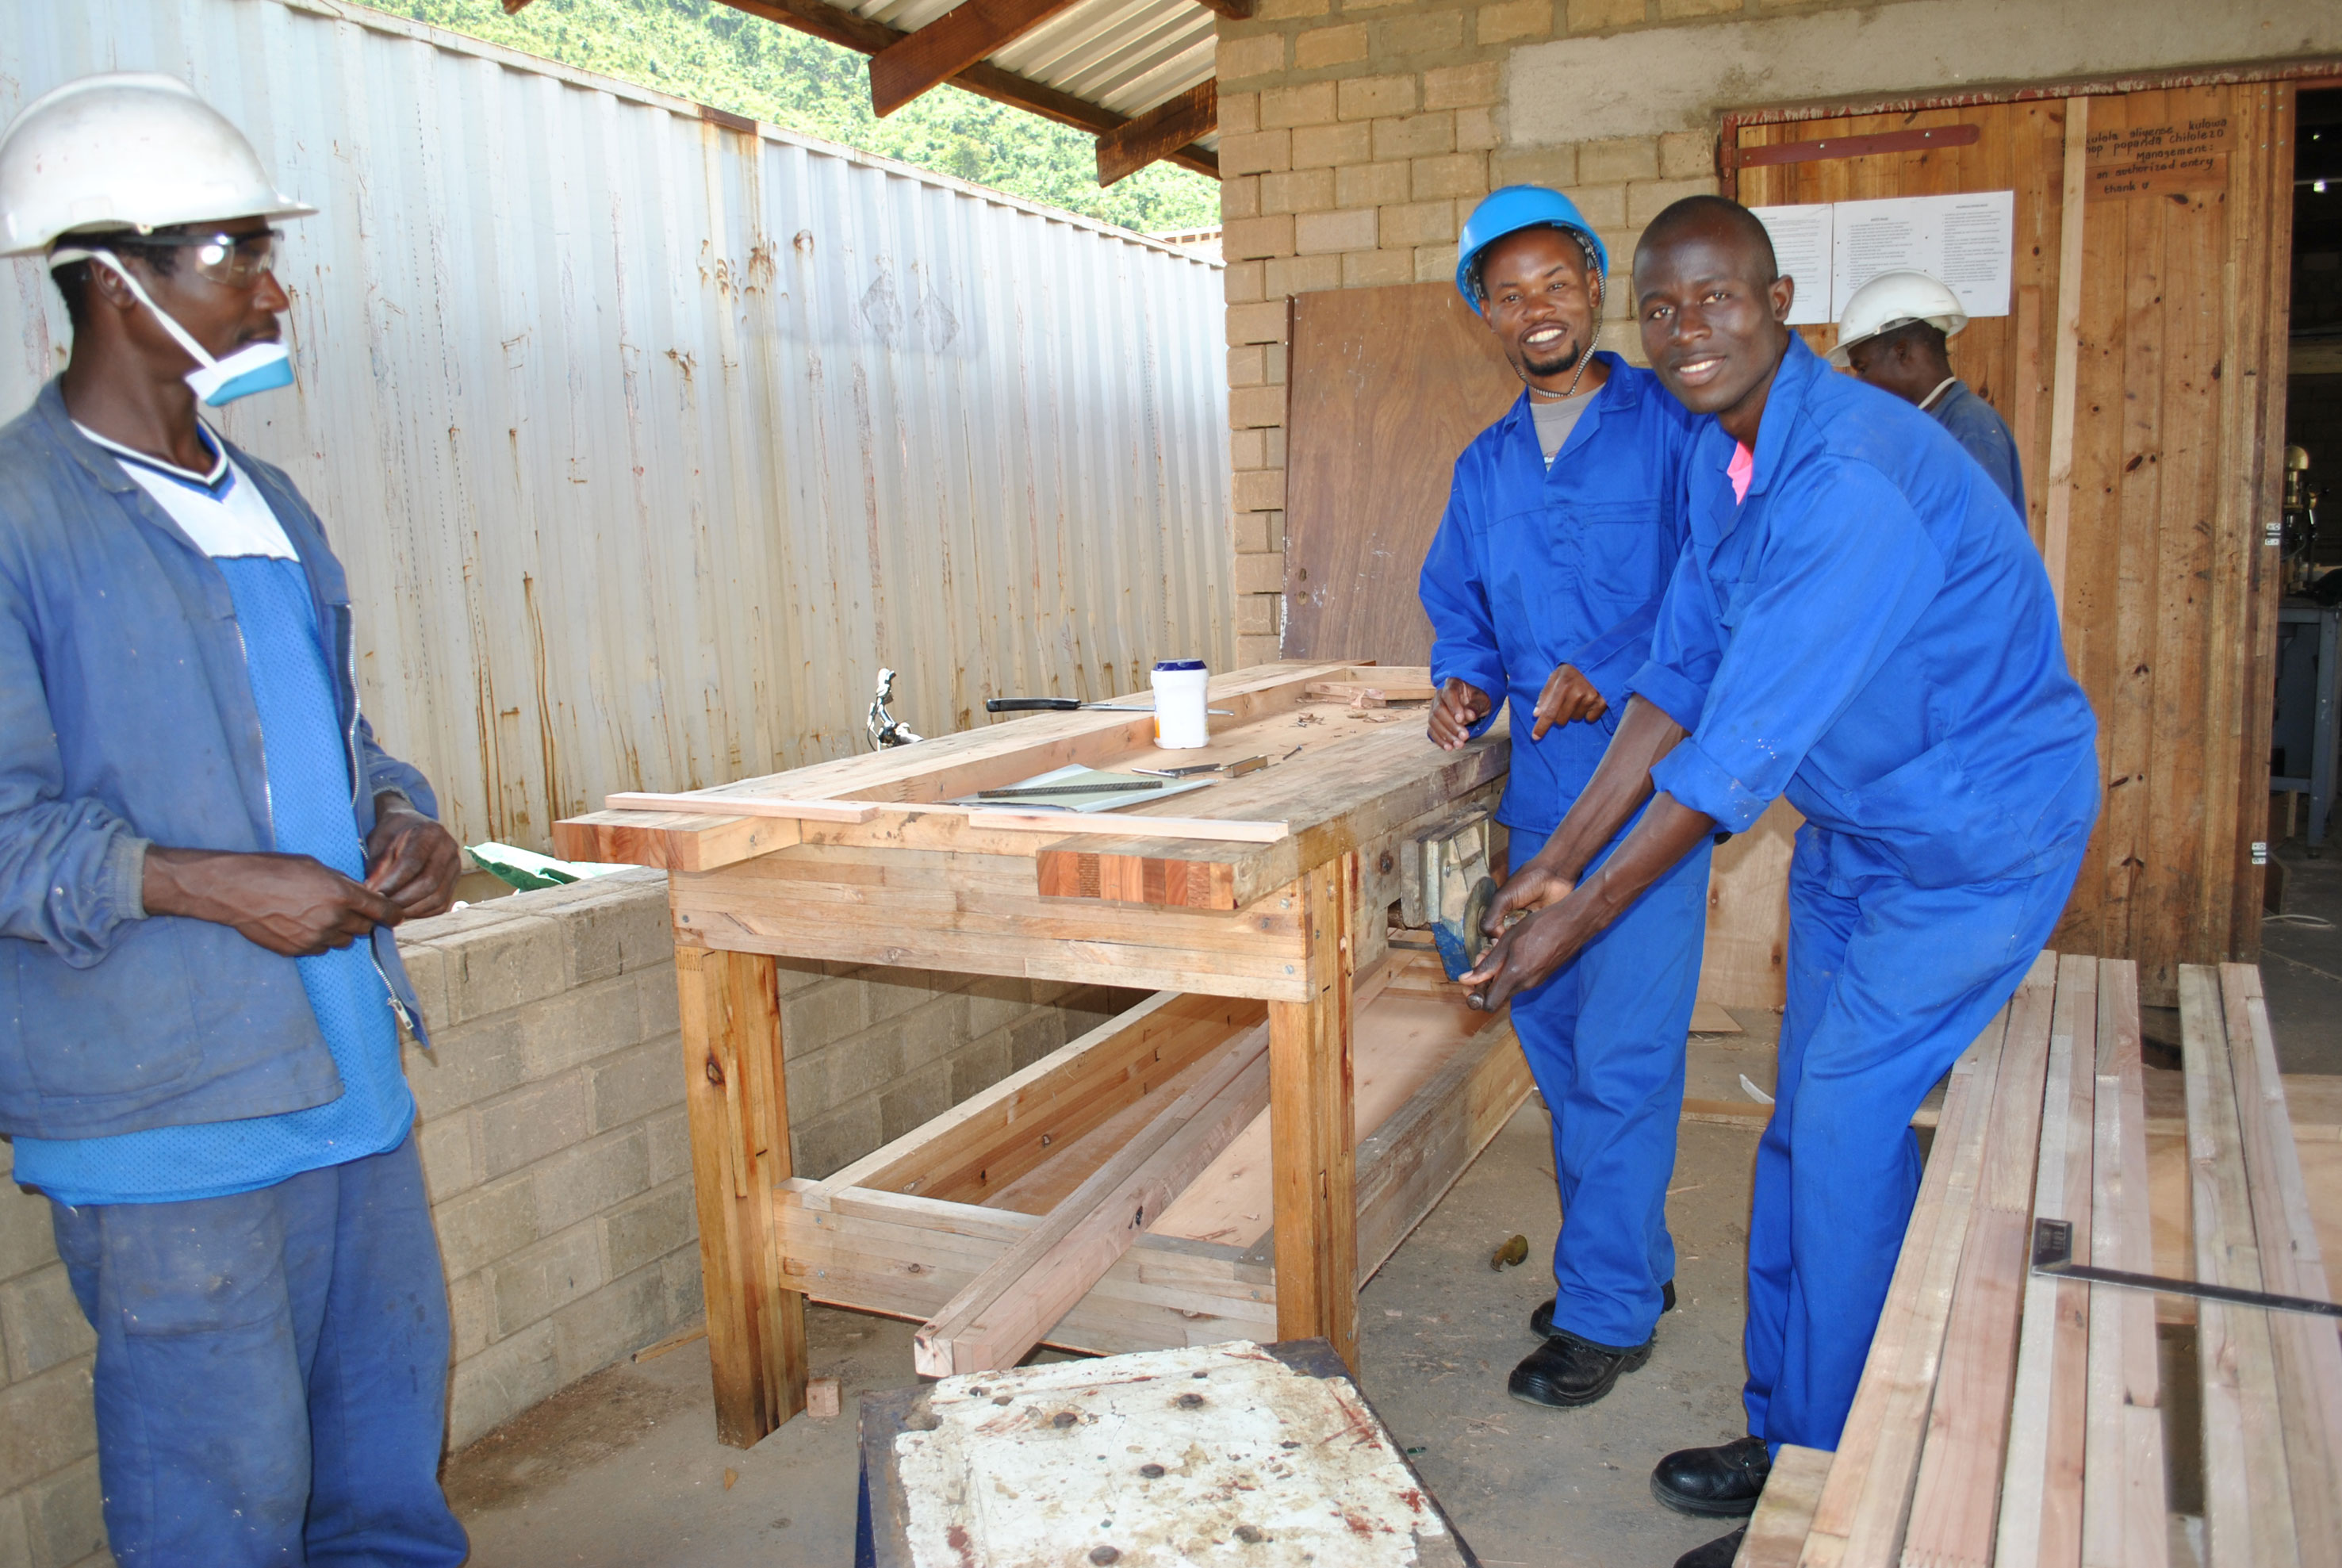 Carpenters show off their handmade workbench